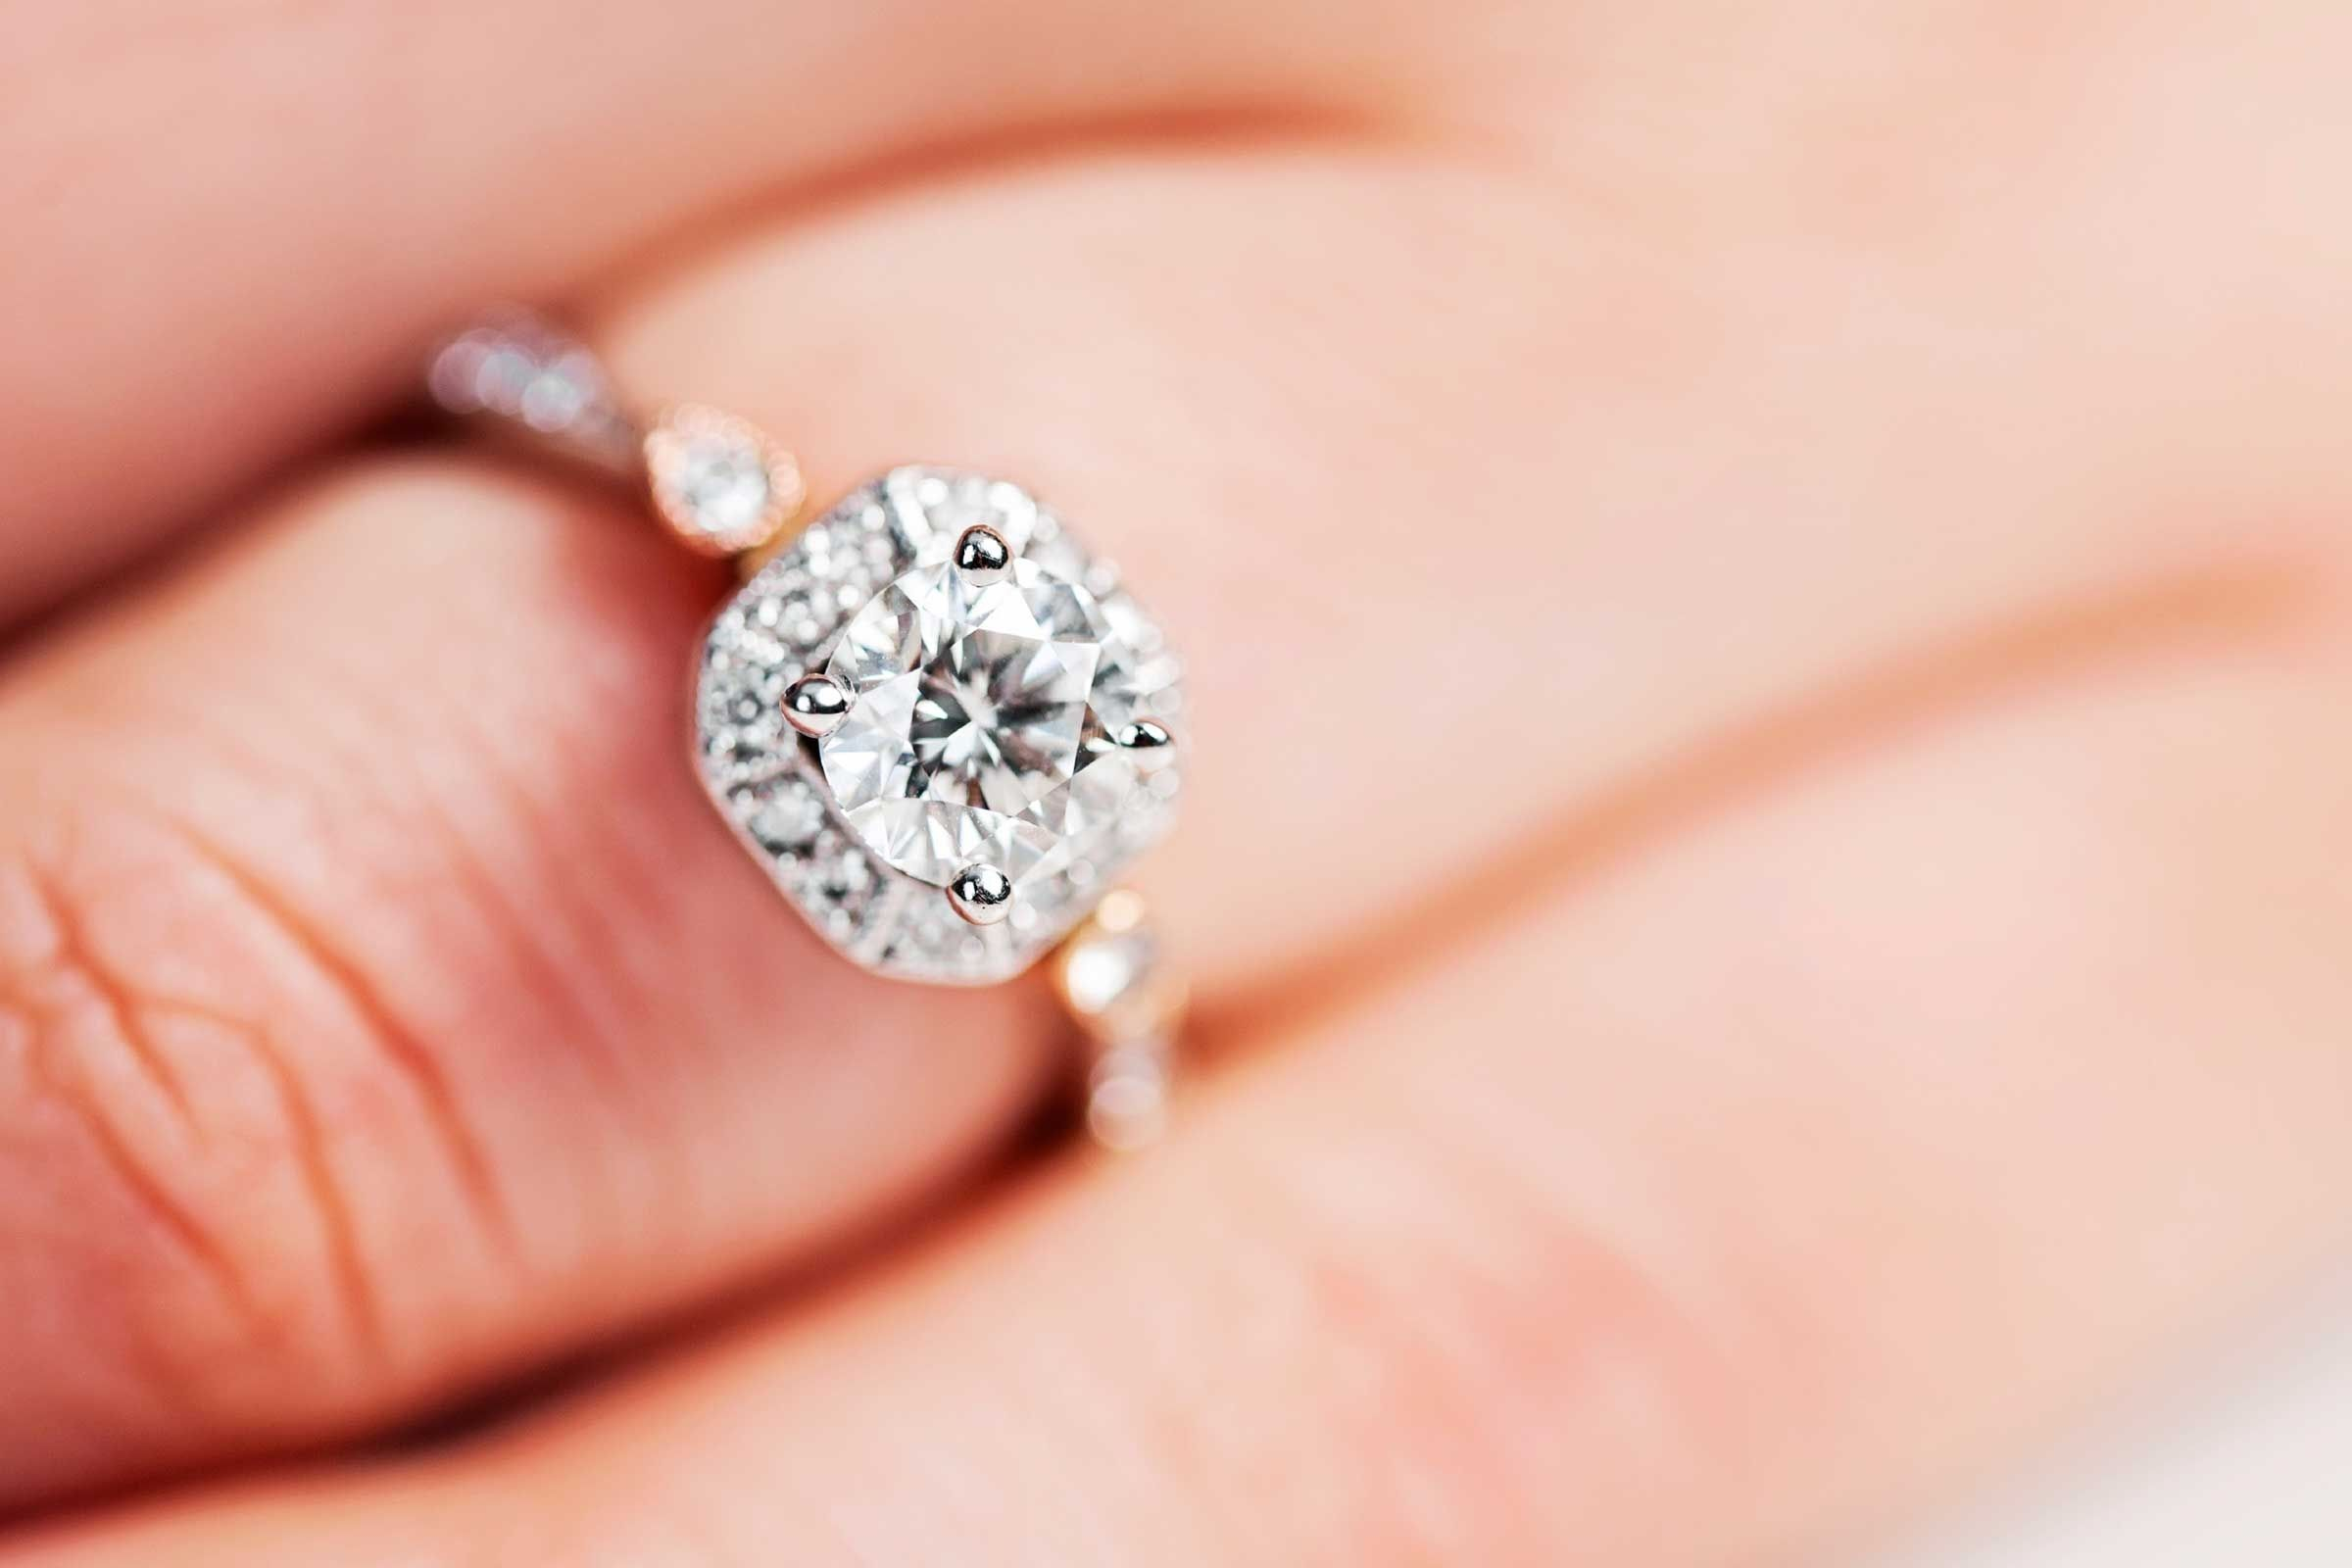 Cleaning Diamond Ring With Ammonia | Ring | Pinterest | Cleaning ...